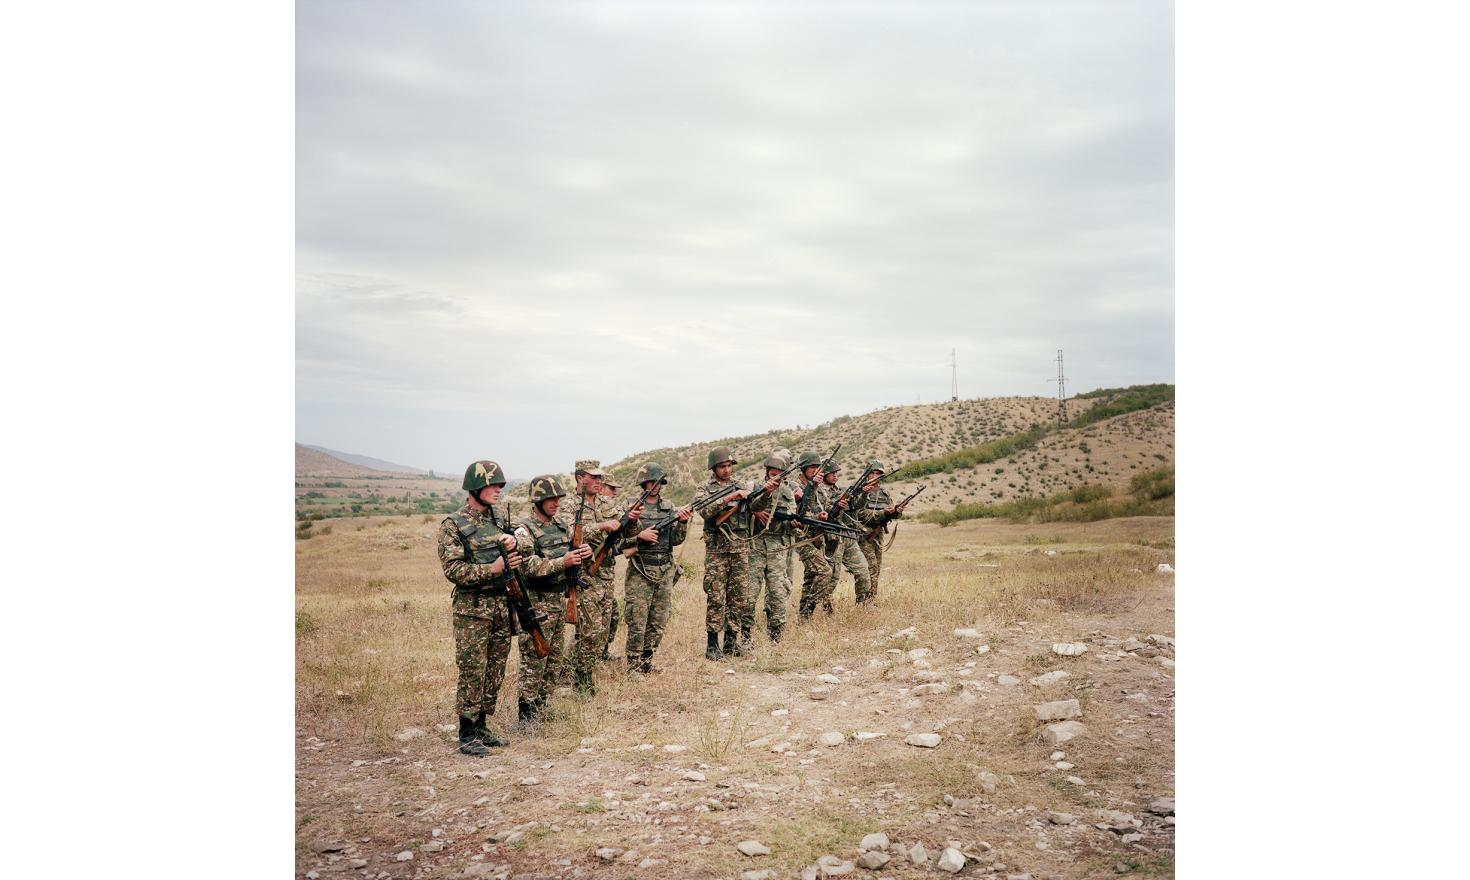 A shooting training in a military base in Askeran region